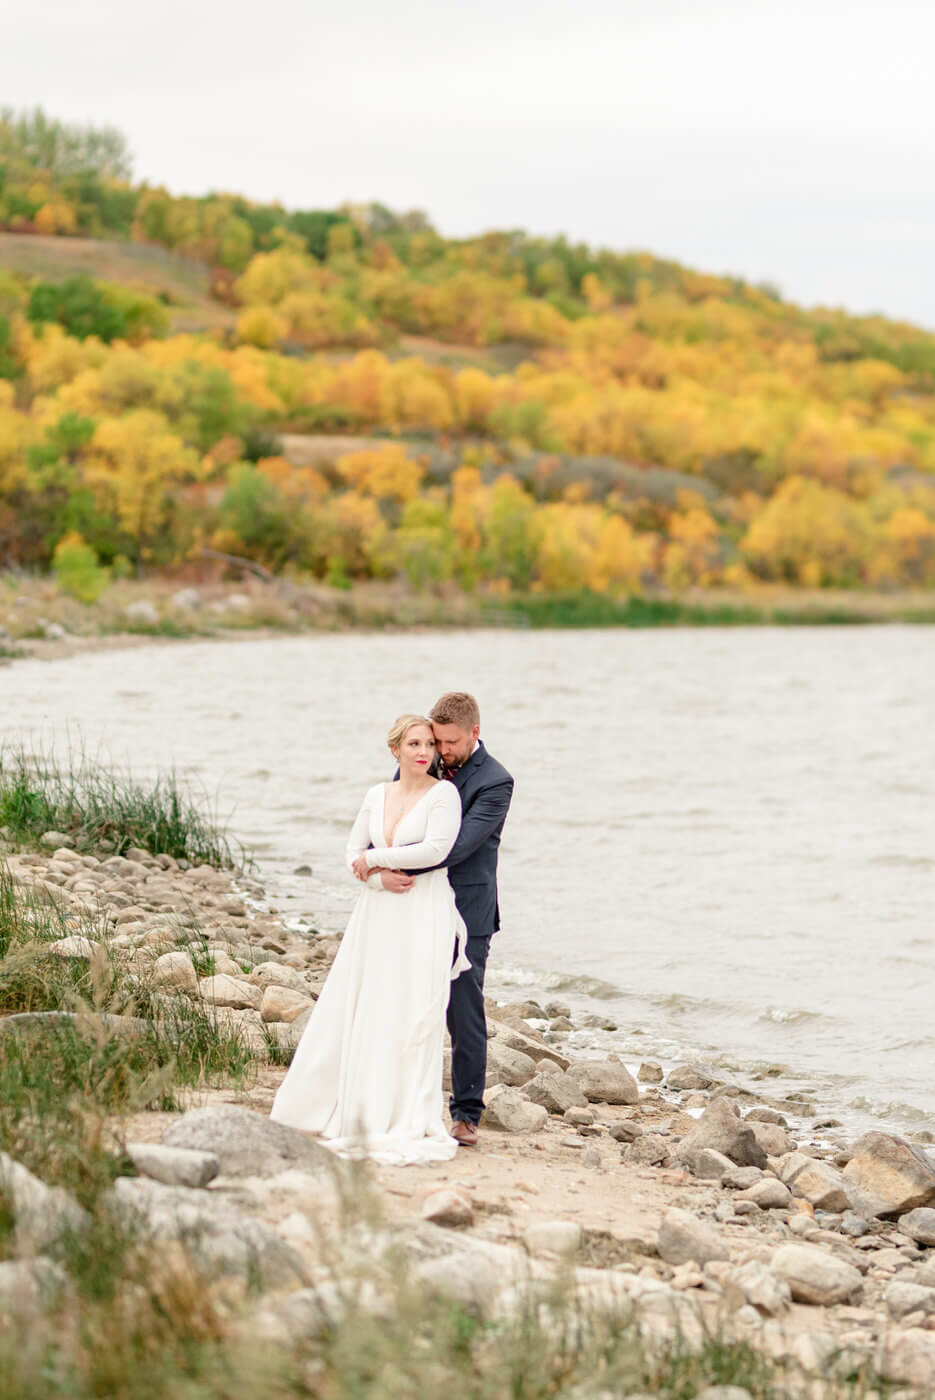 Tyrel & Allison - Bride & Groom by river in Qu'appelle Valley Lumsden